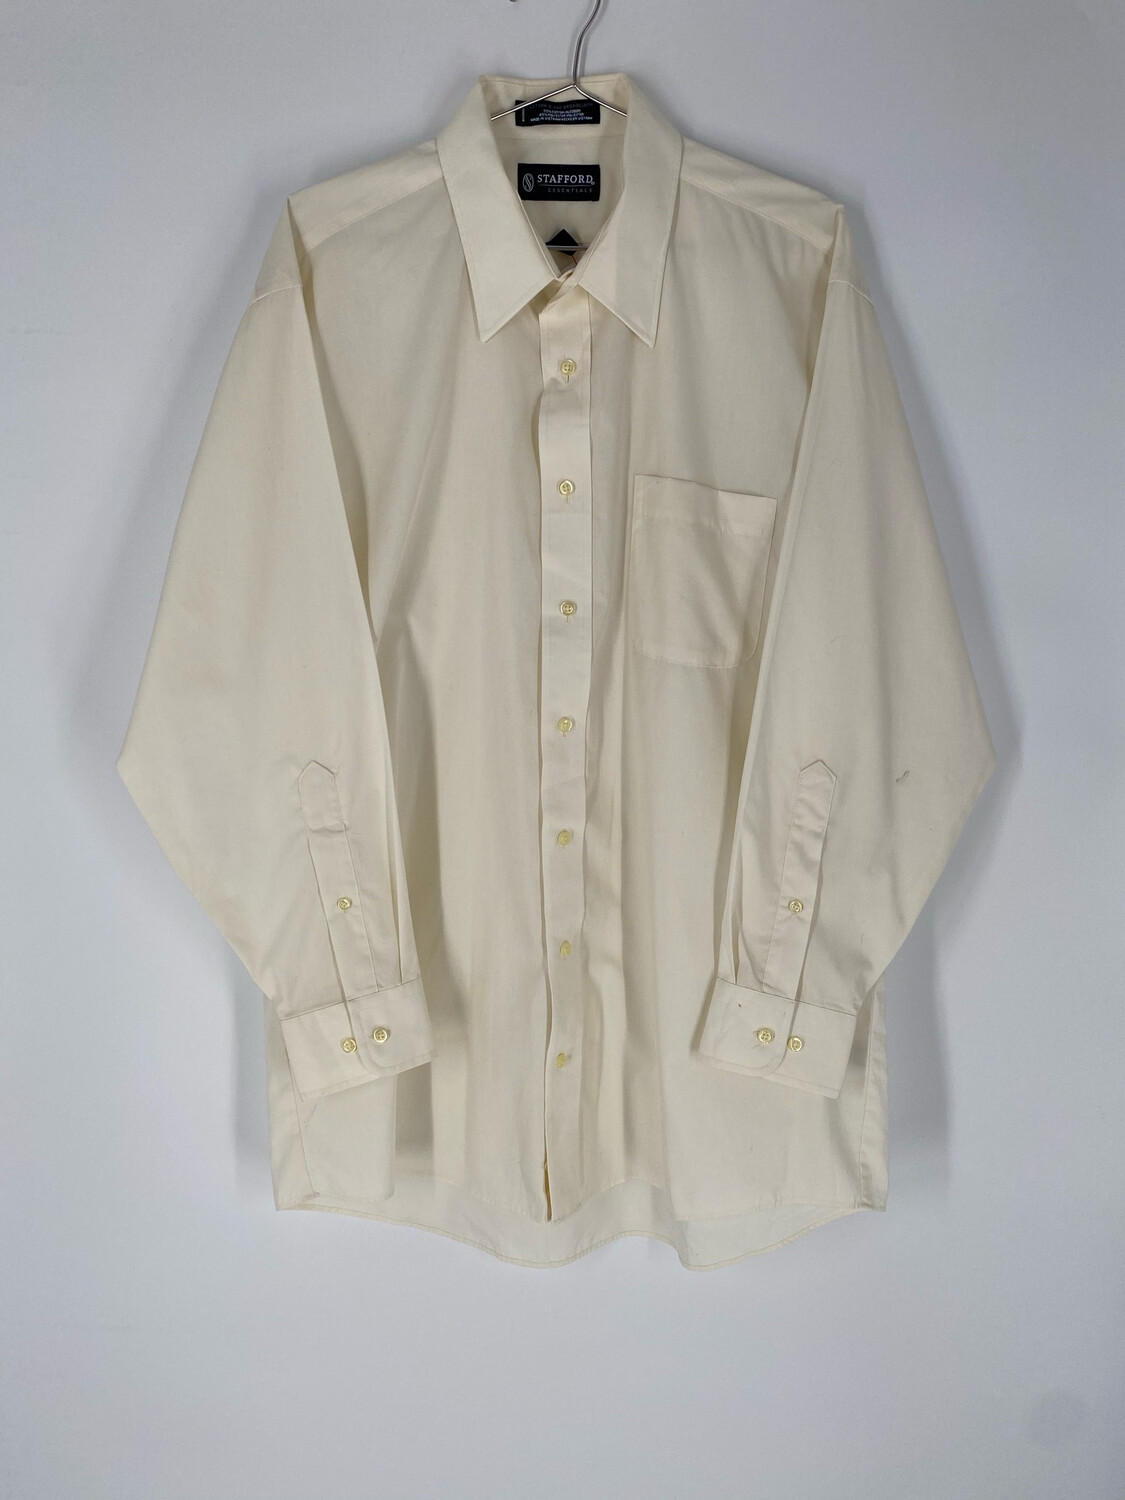 Stafford Essentials Button Up Size Large